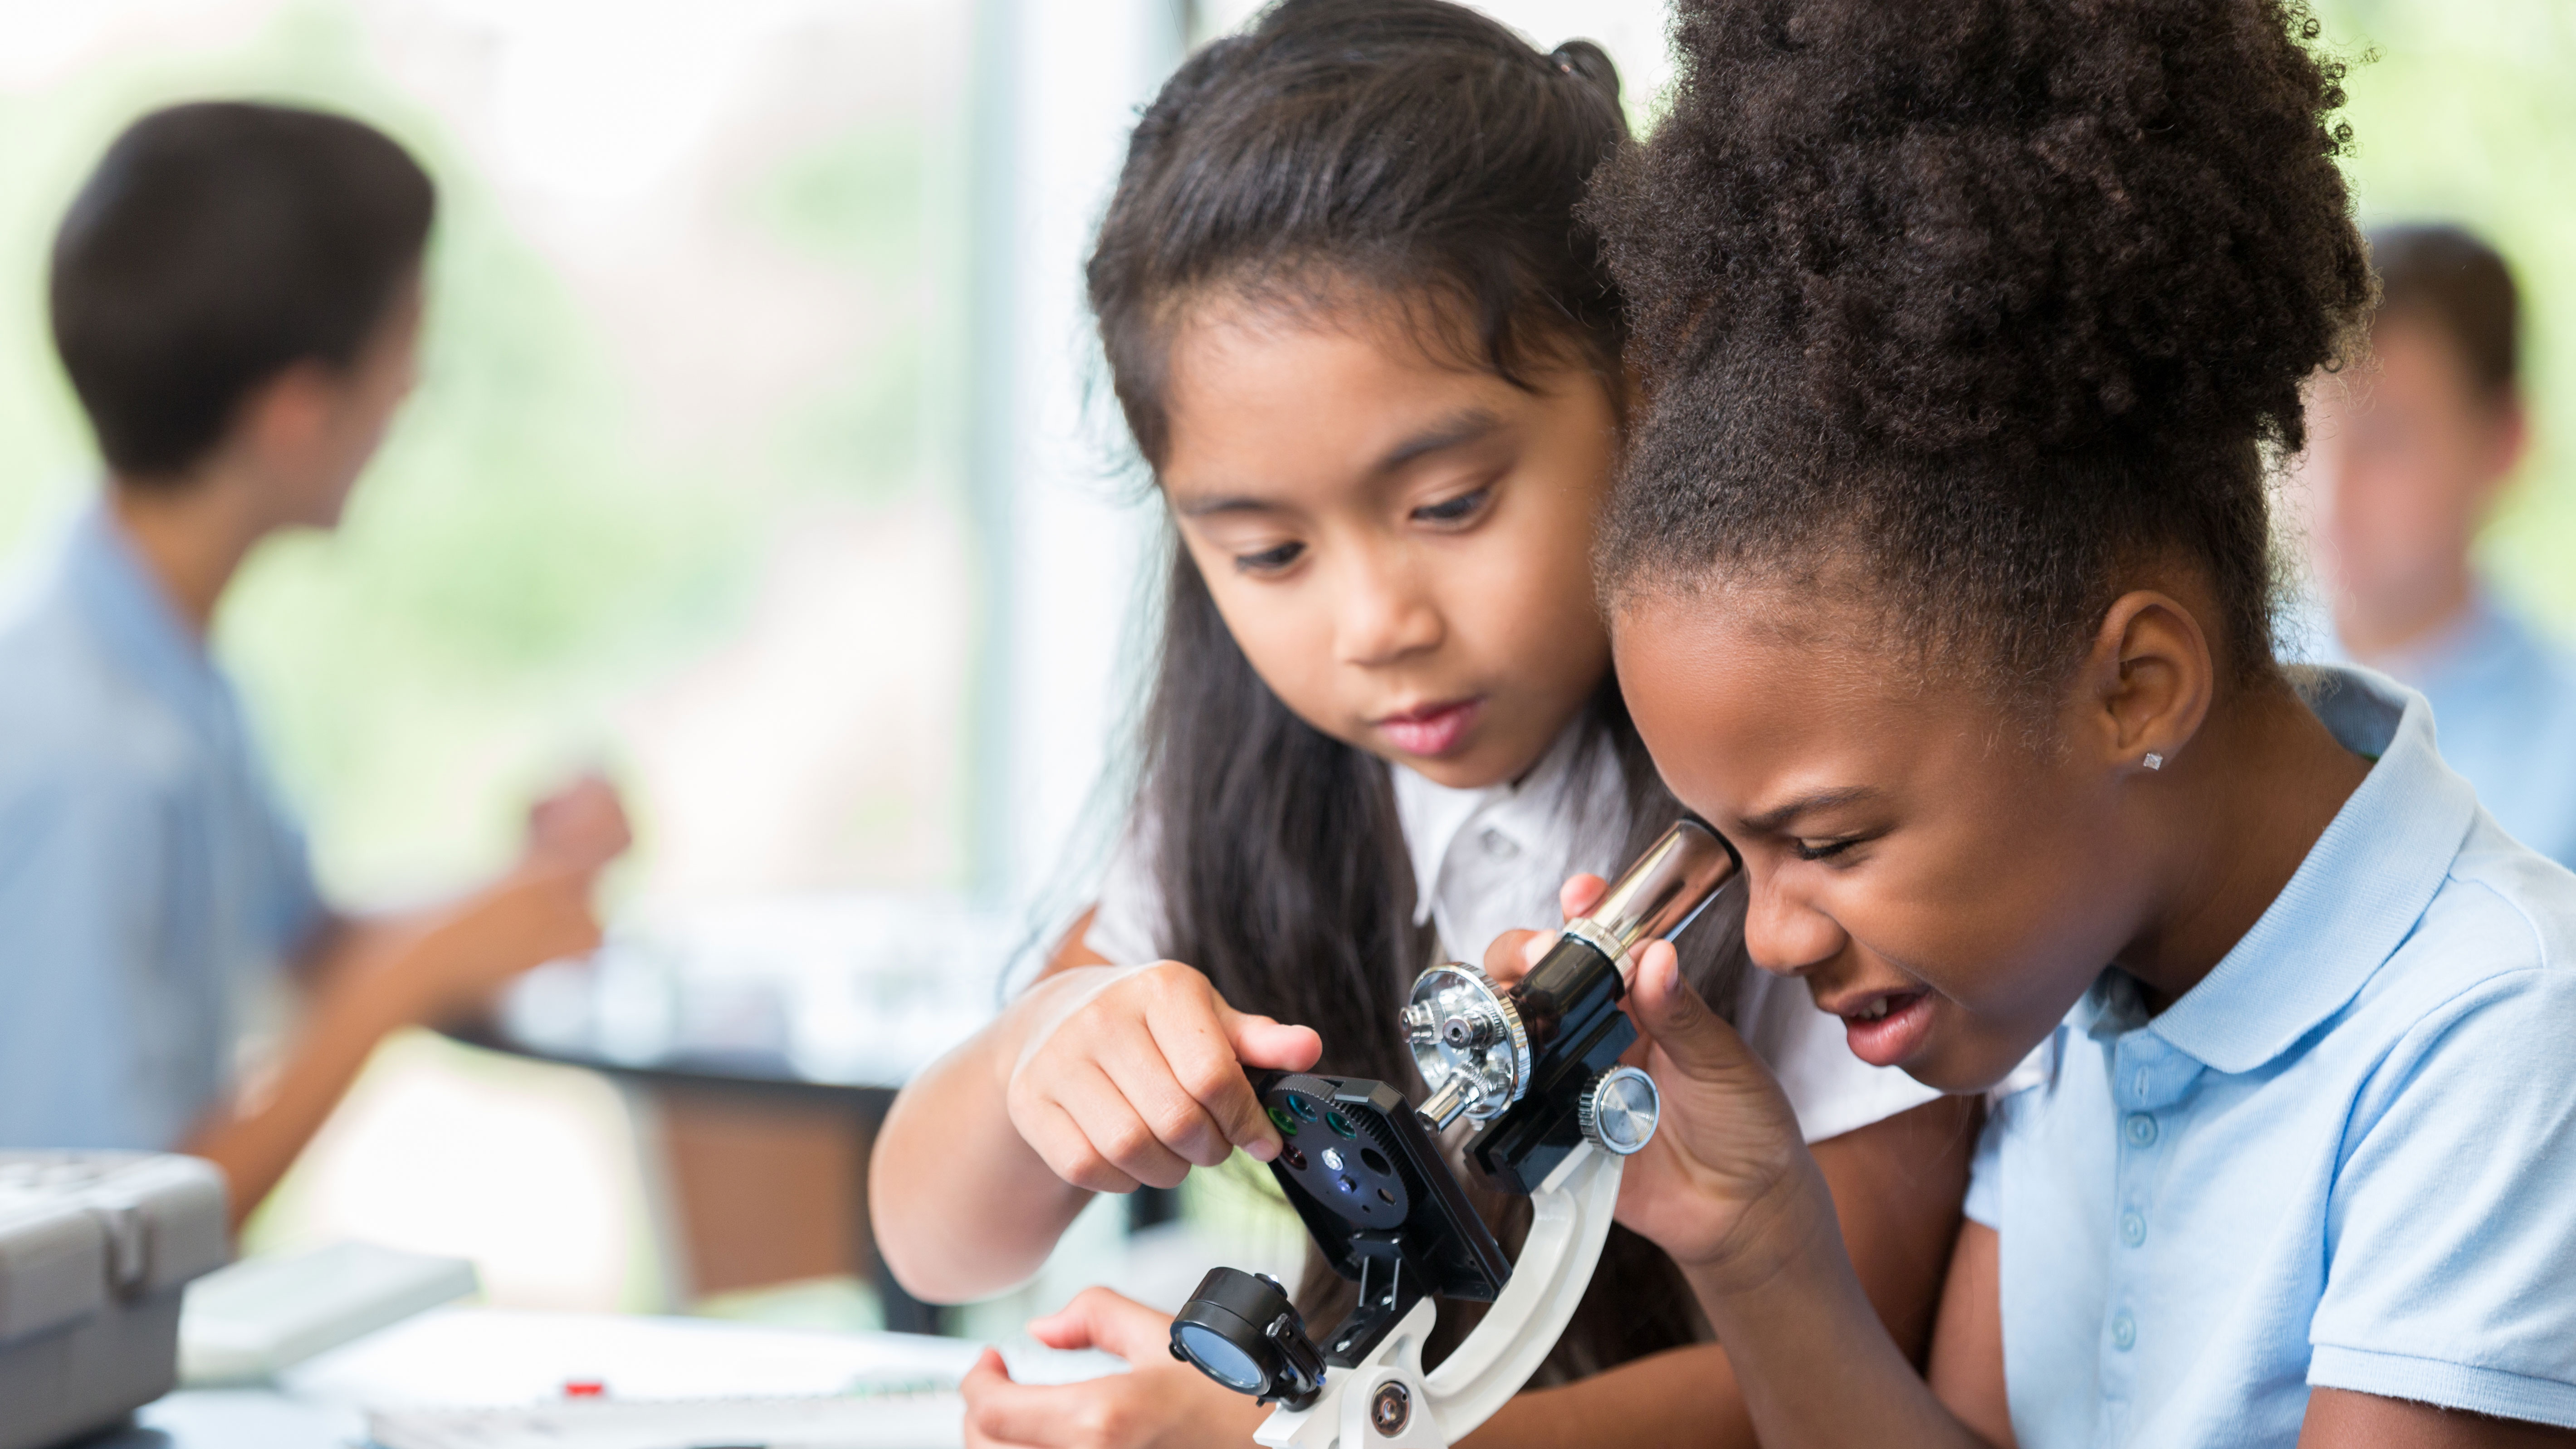 Young girls in science class looking into a microscope